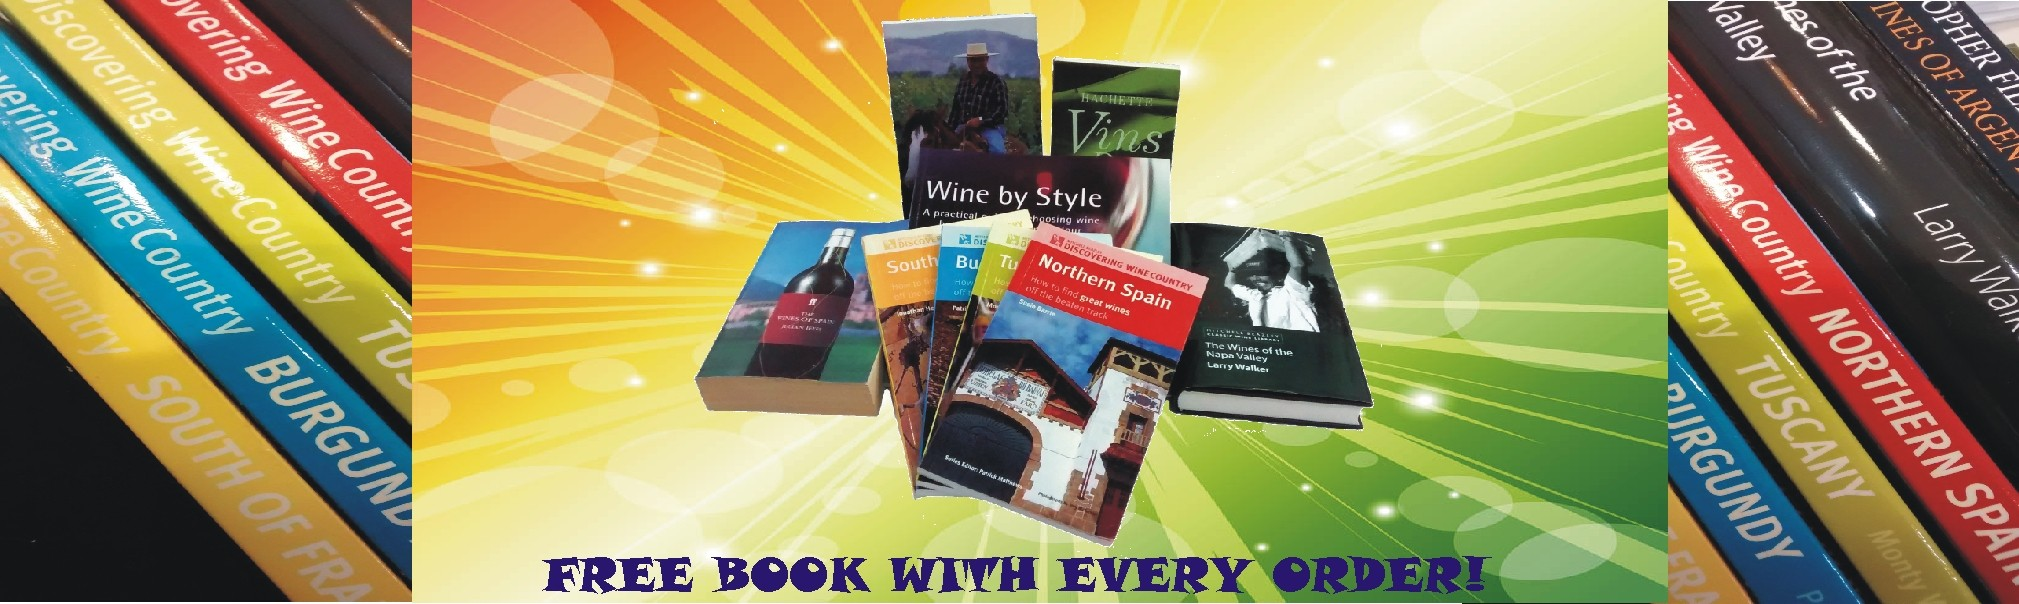 Free wine book with every order!